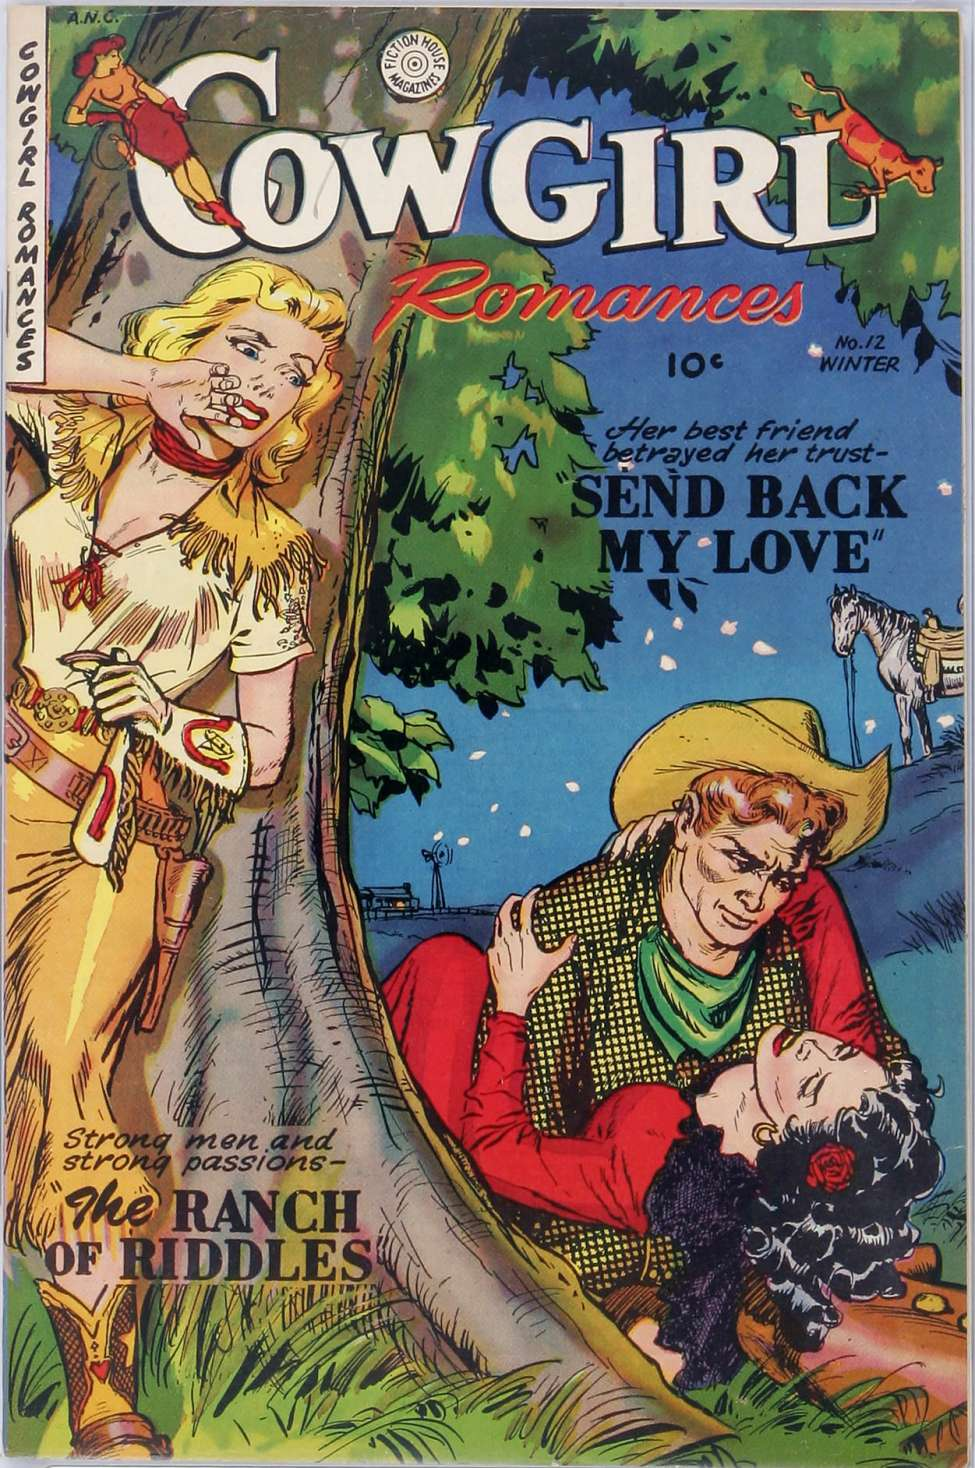 Comic Book Cover For Cowgirl Romances #12